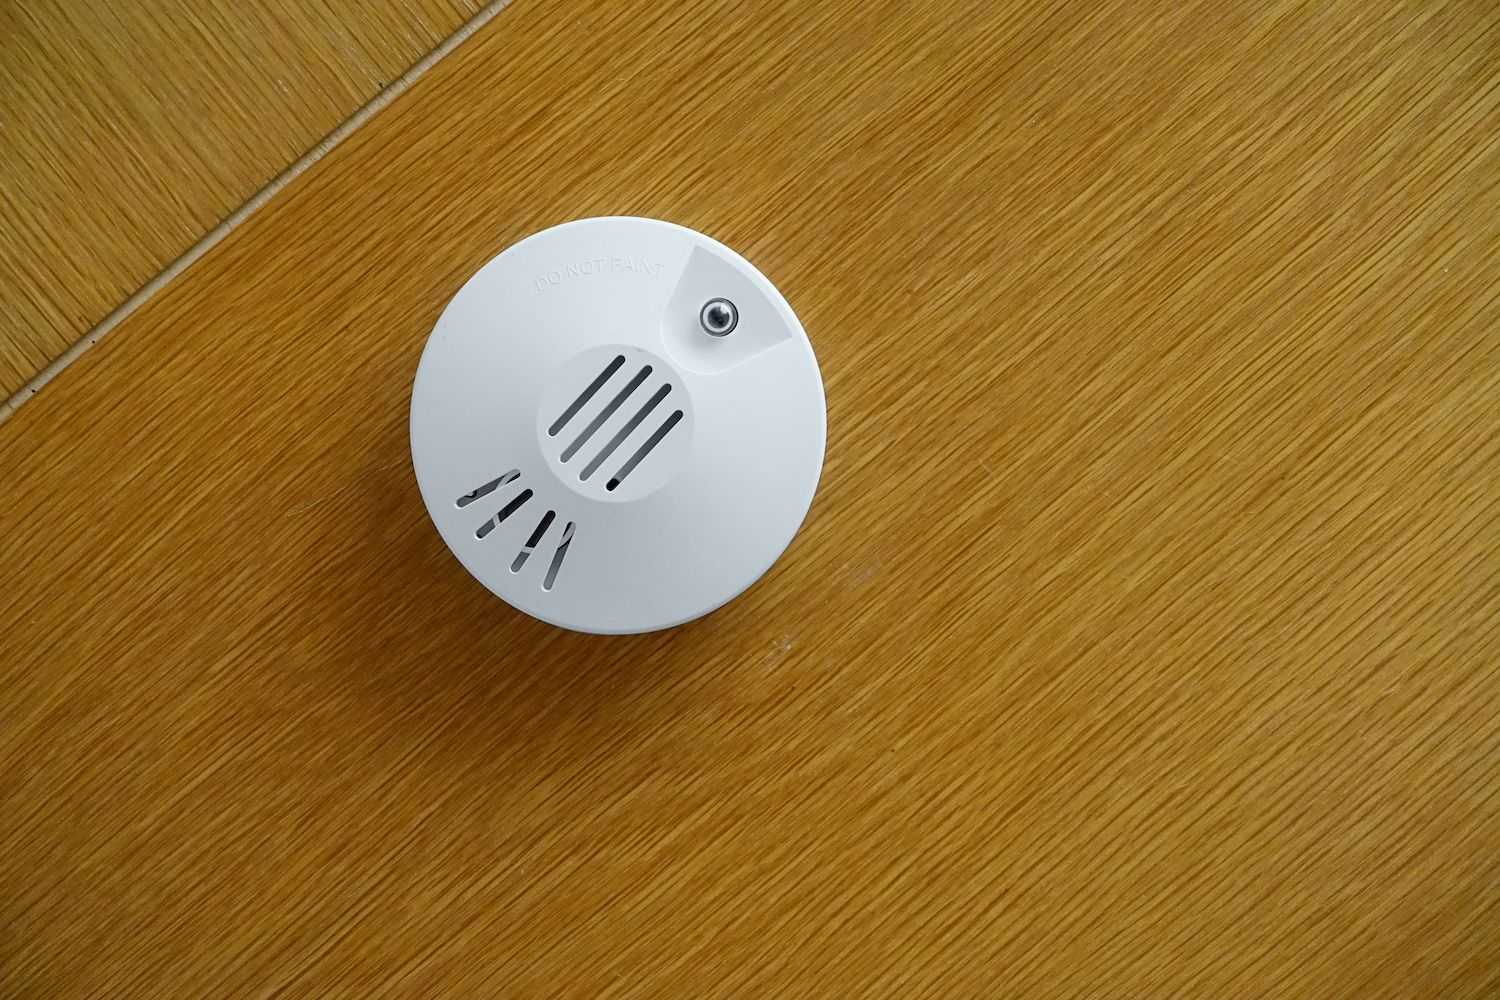 What To Do About Smoke Detector False Alarms